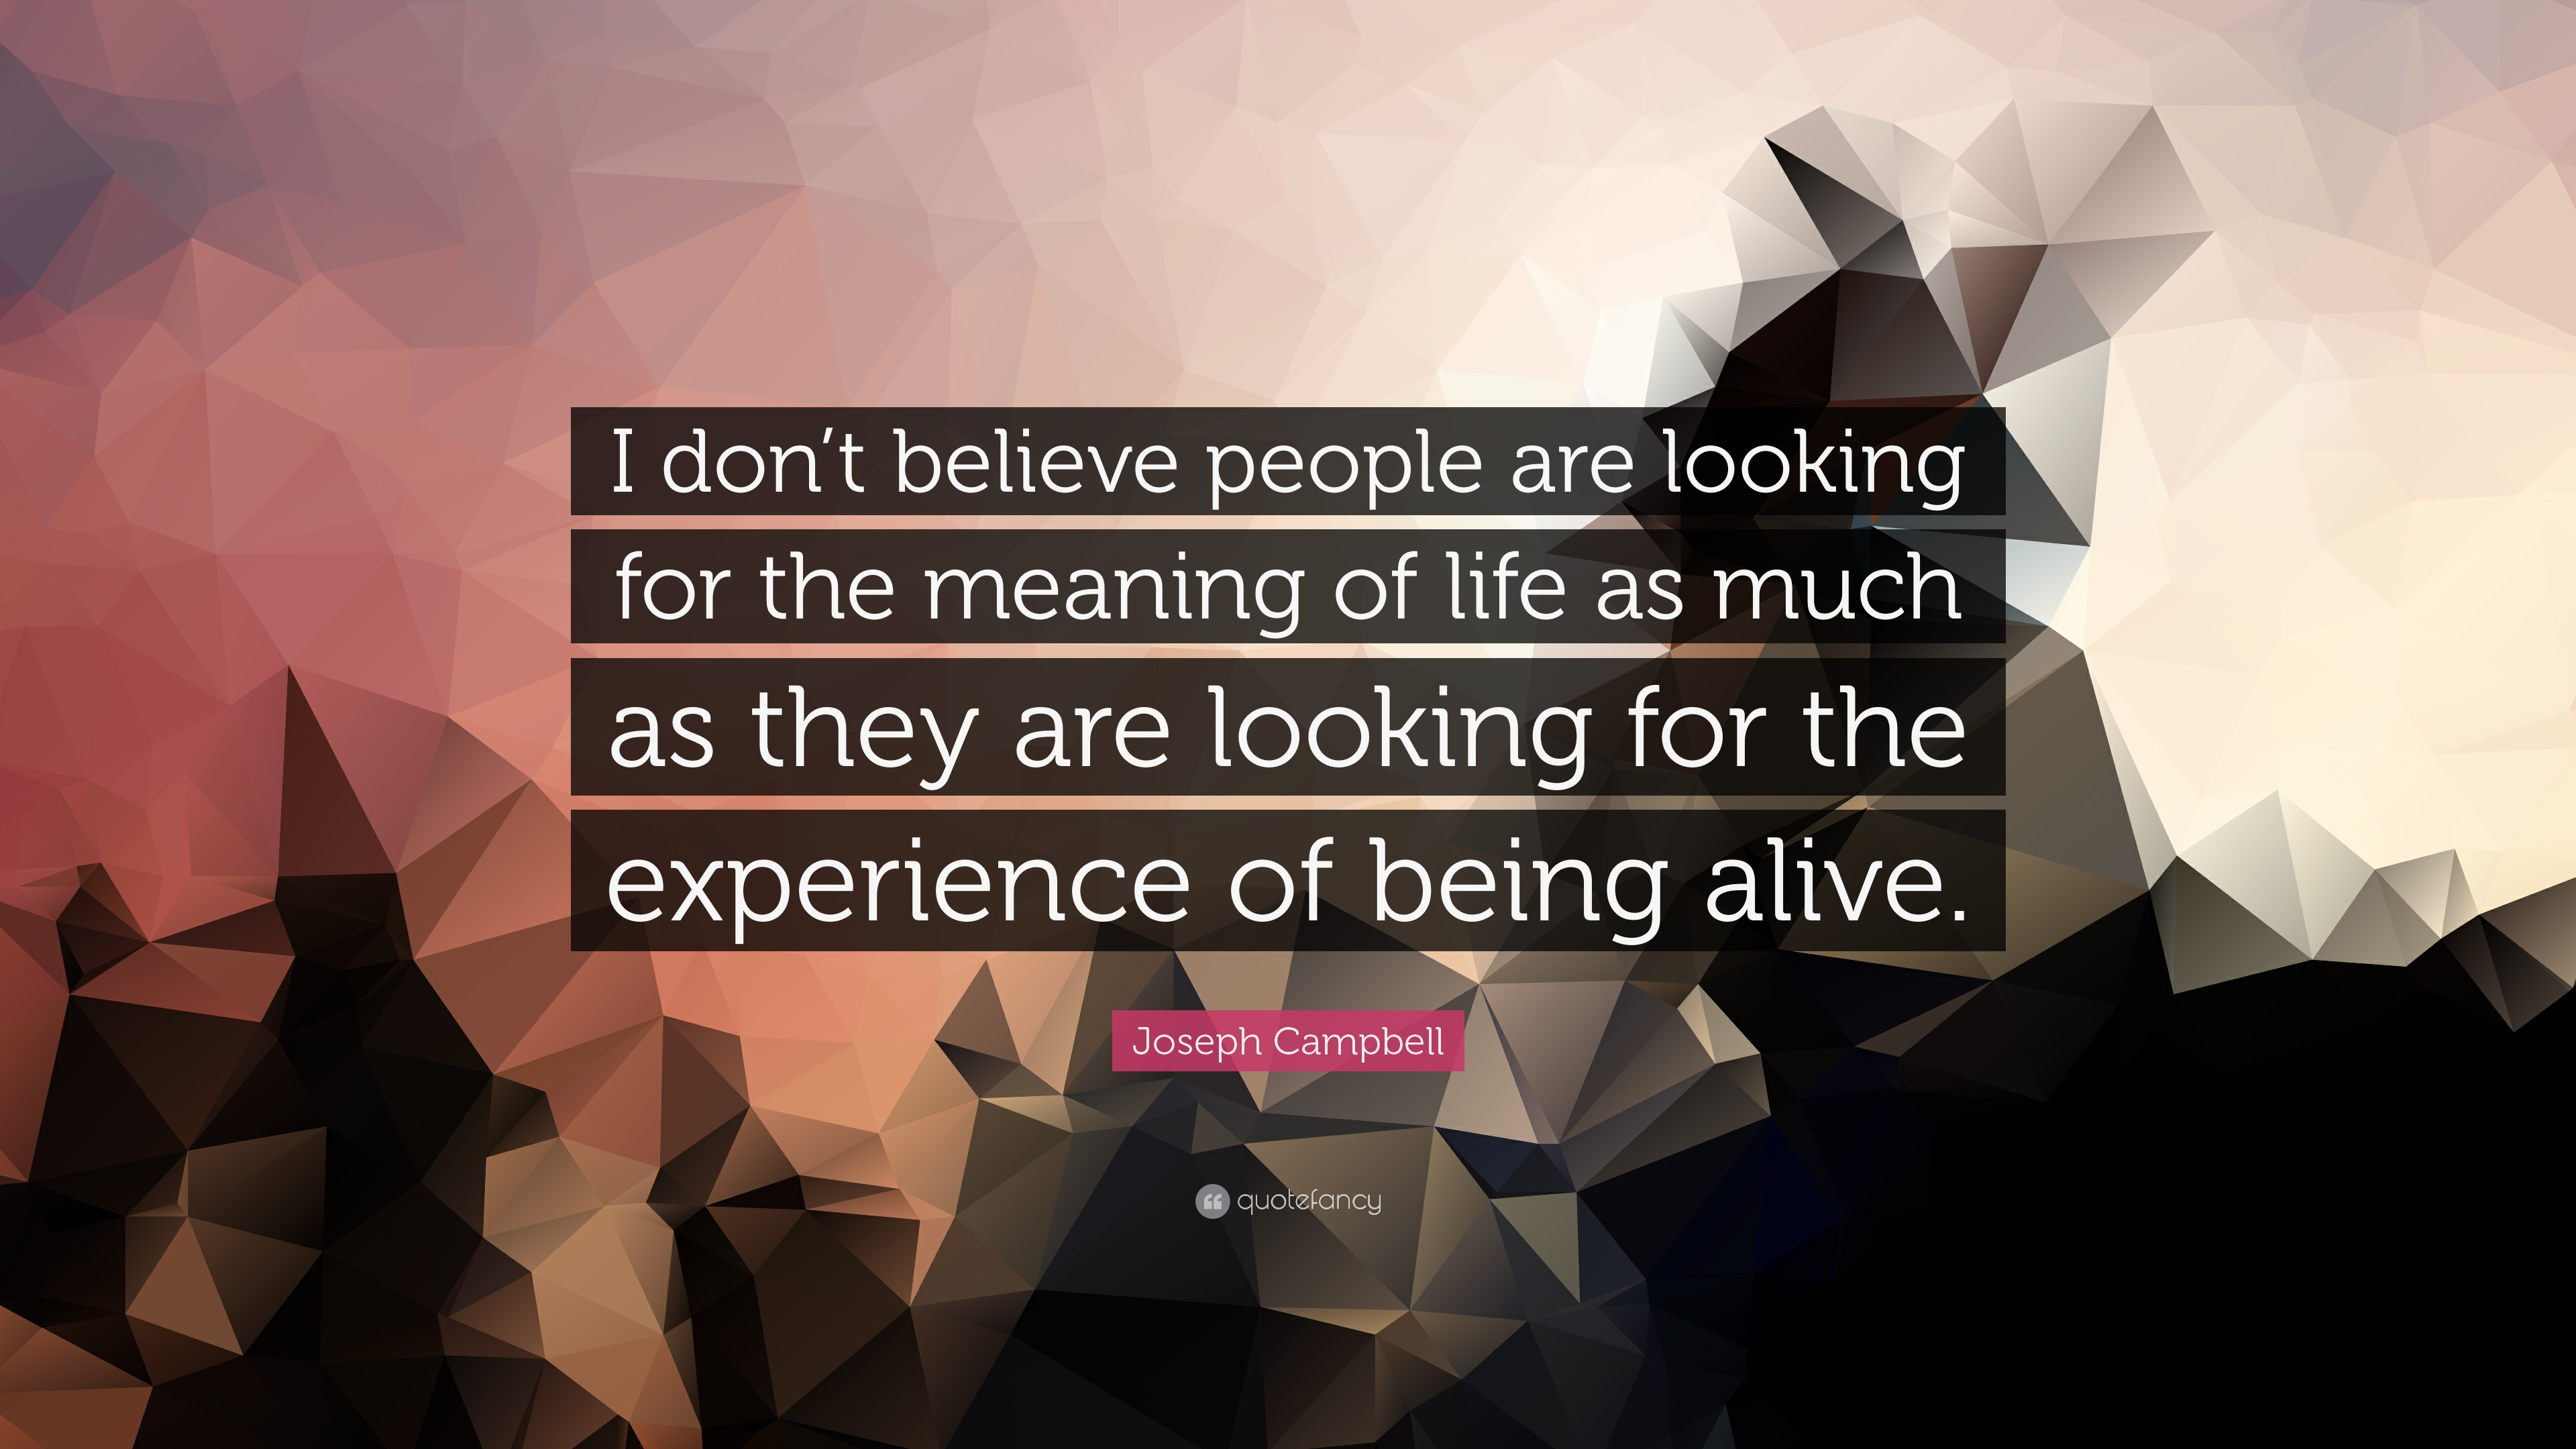 joseph campbell quote ldquo i don t believe people are looking for the joseph campbell quote ldquoi don t believe people are looking for the meaning